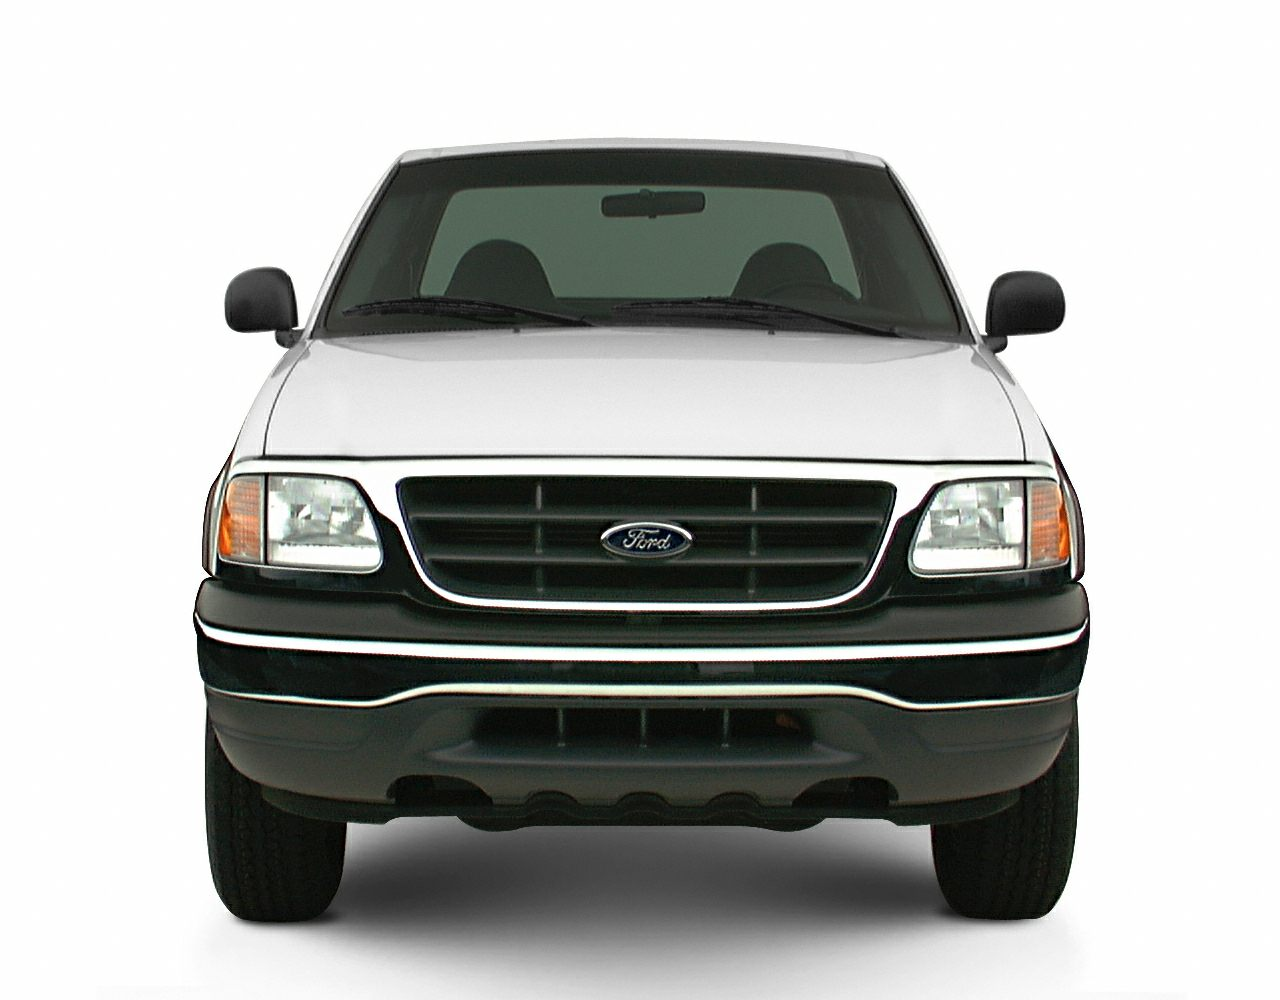 2000 ford f 150 xl 4x4 regular cab styleside 138 8 in wb pictures. Black Bedroom Furniture Sets. Home Design Ideas